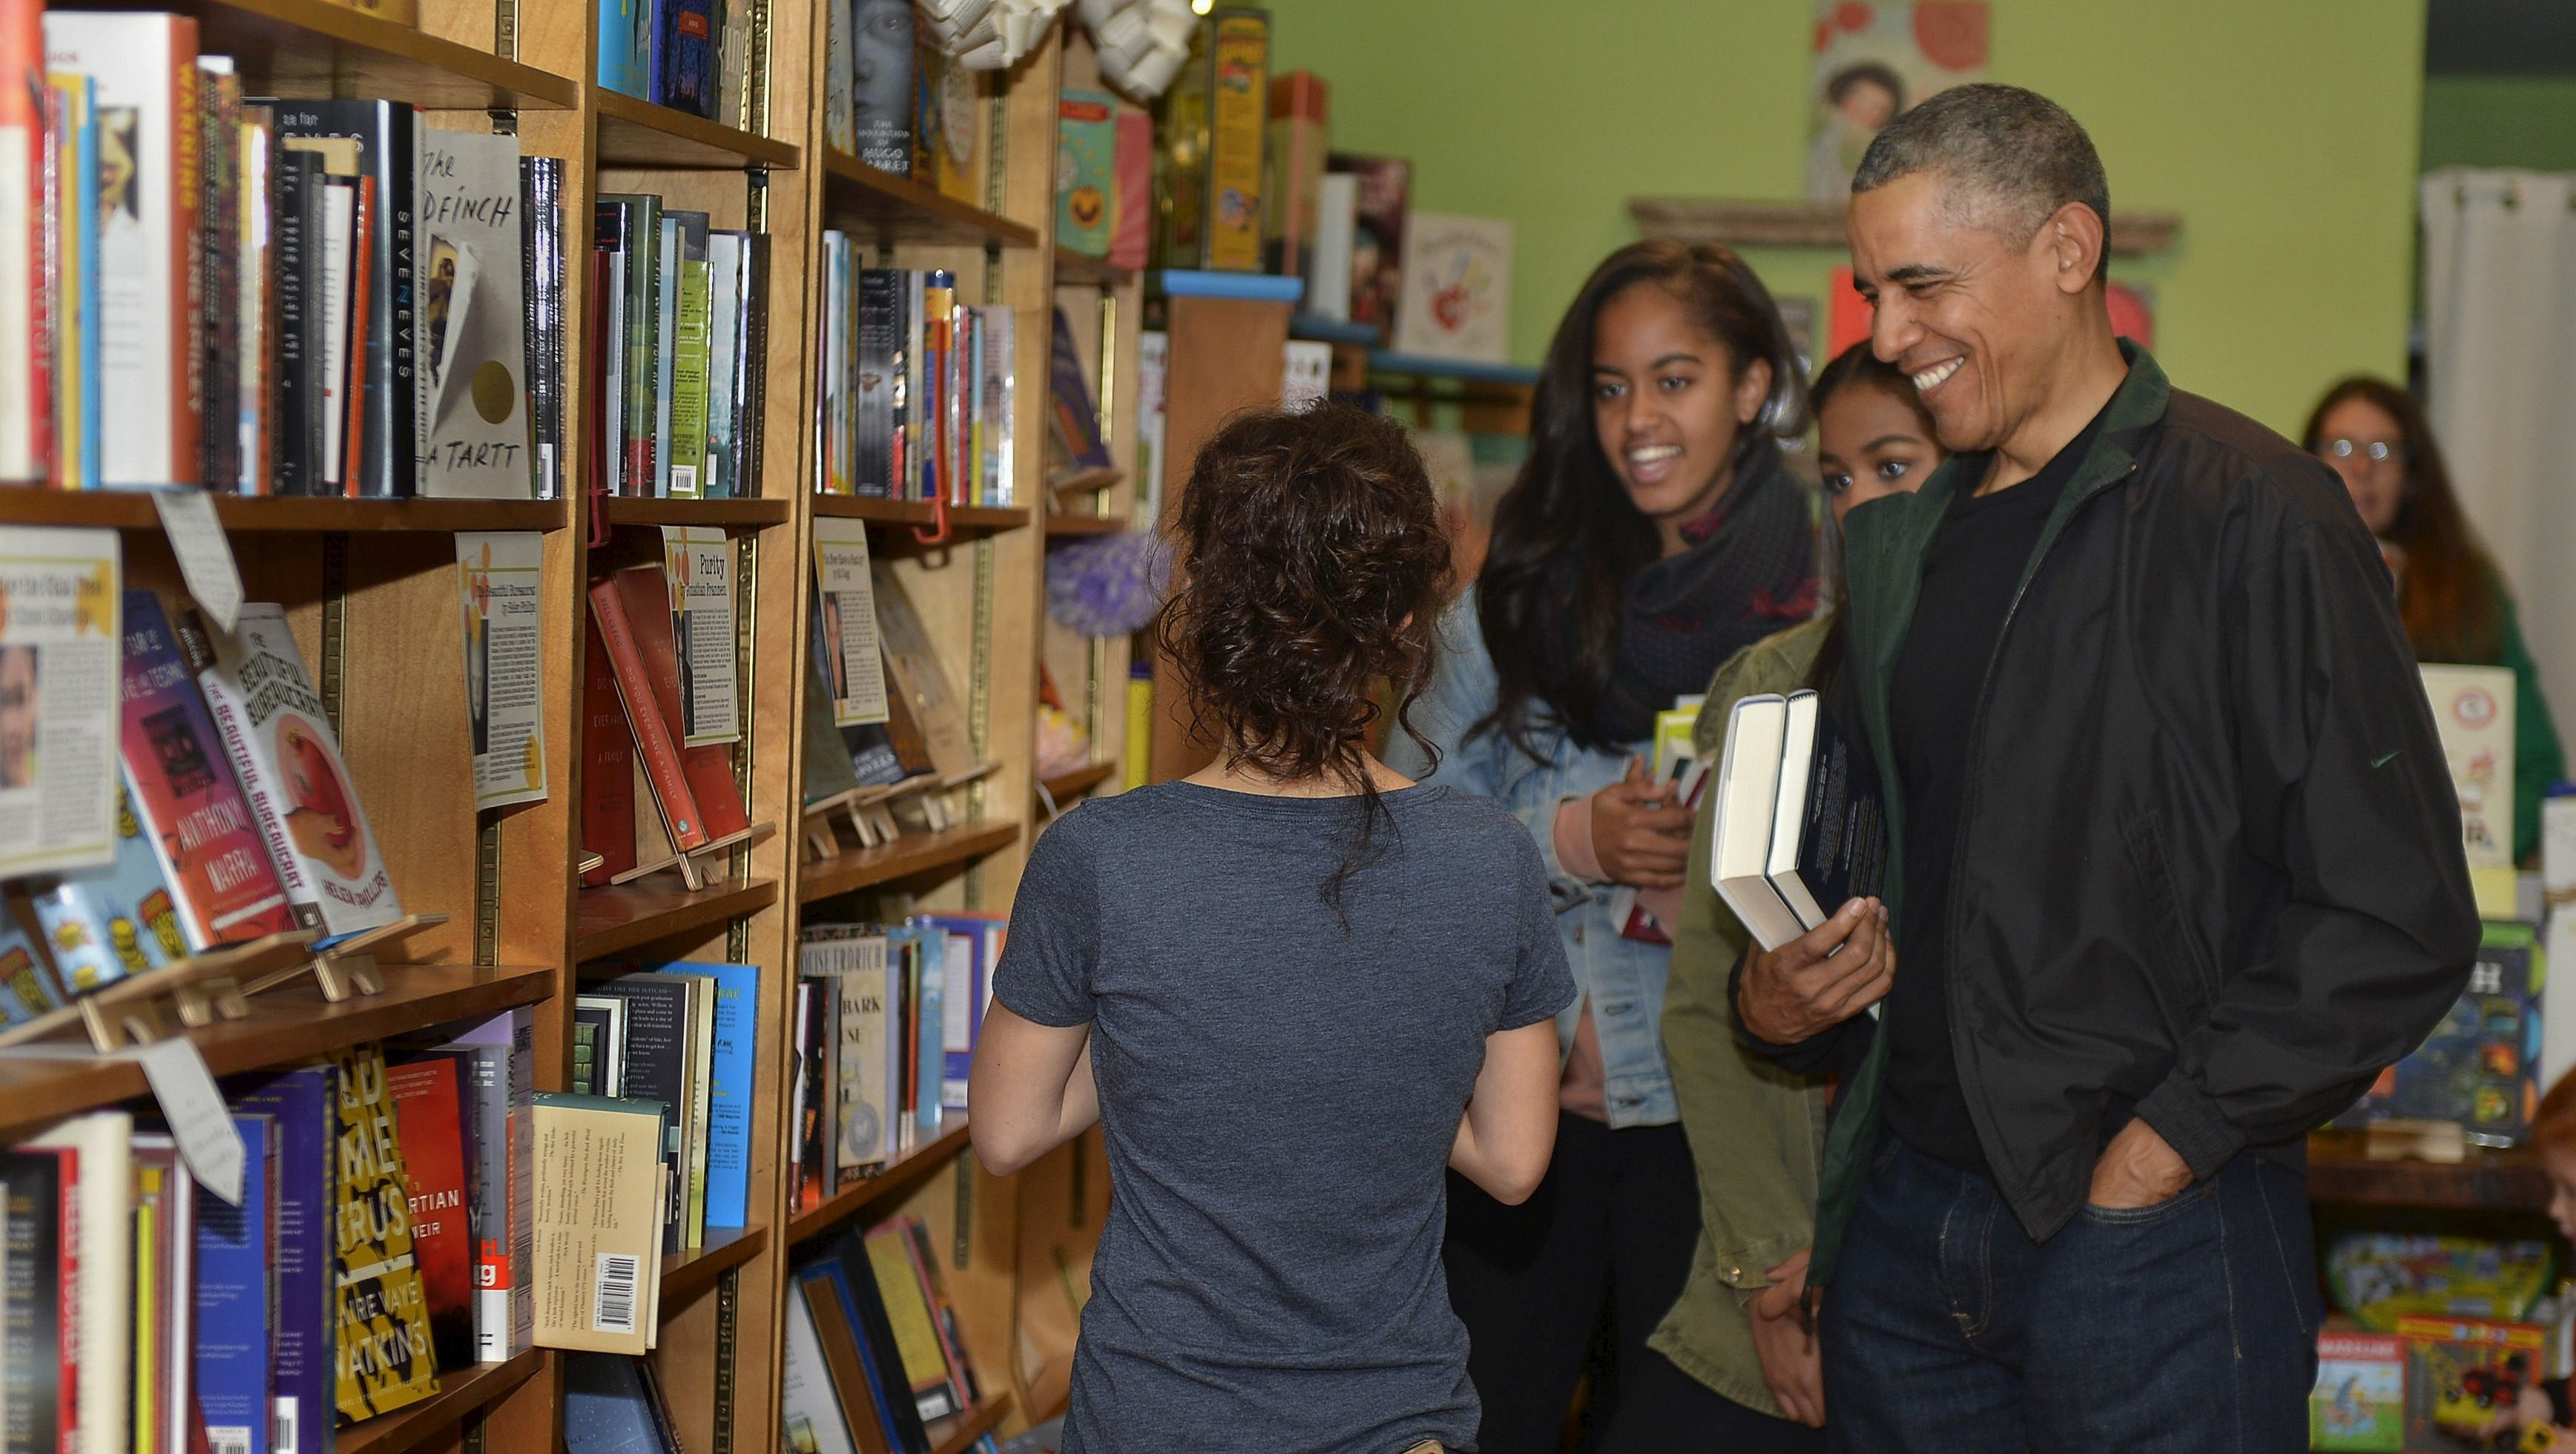 Barack Obama's recommended reading list on inequality and identity